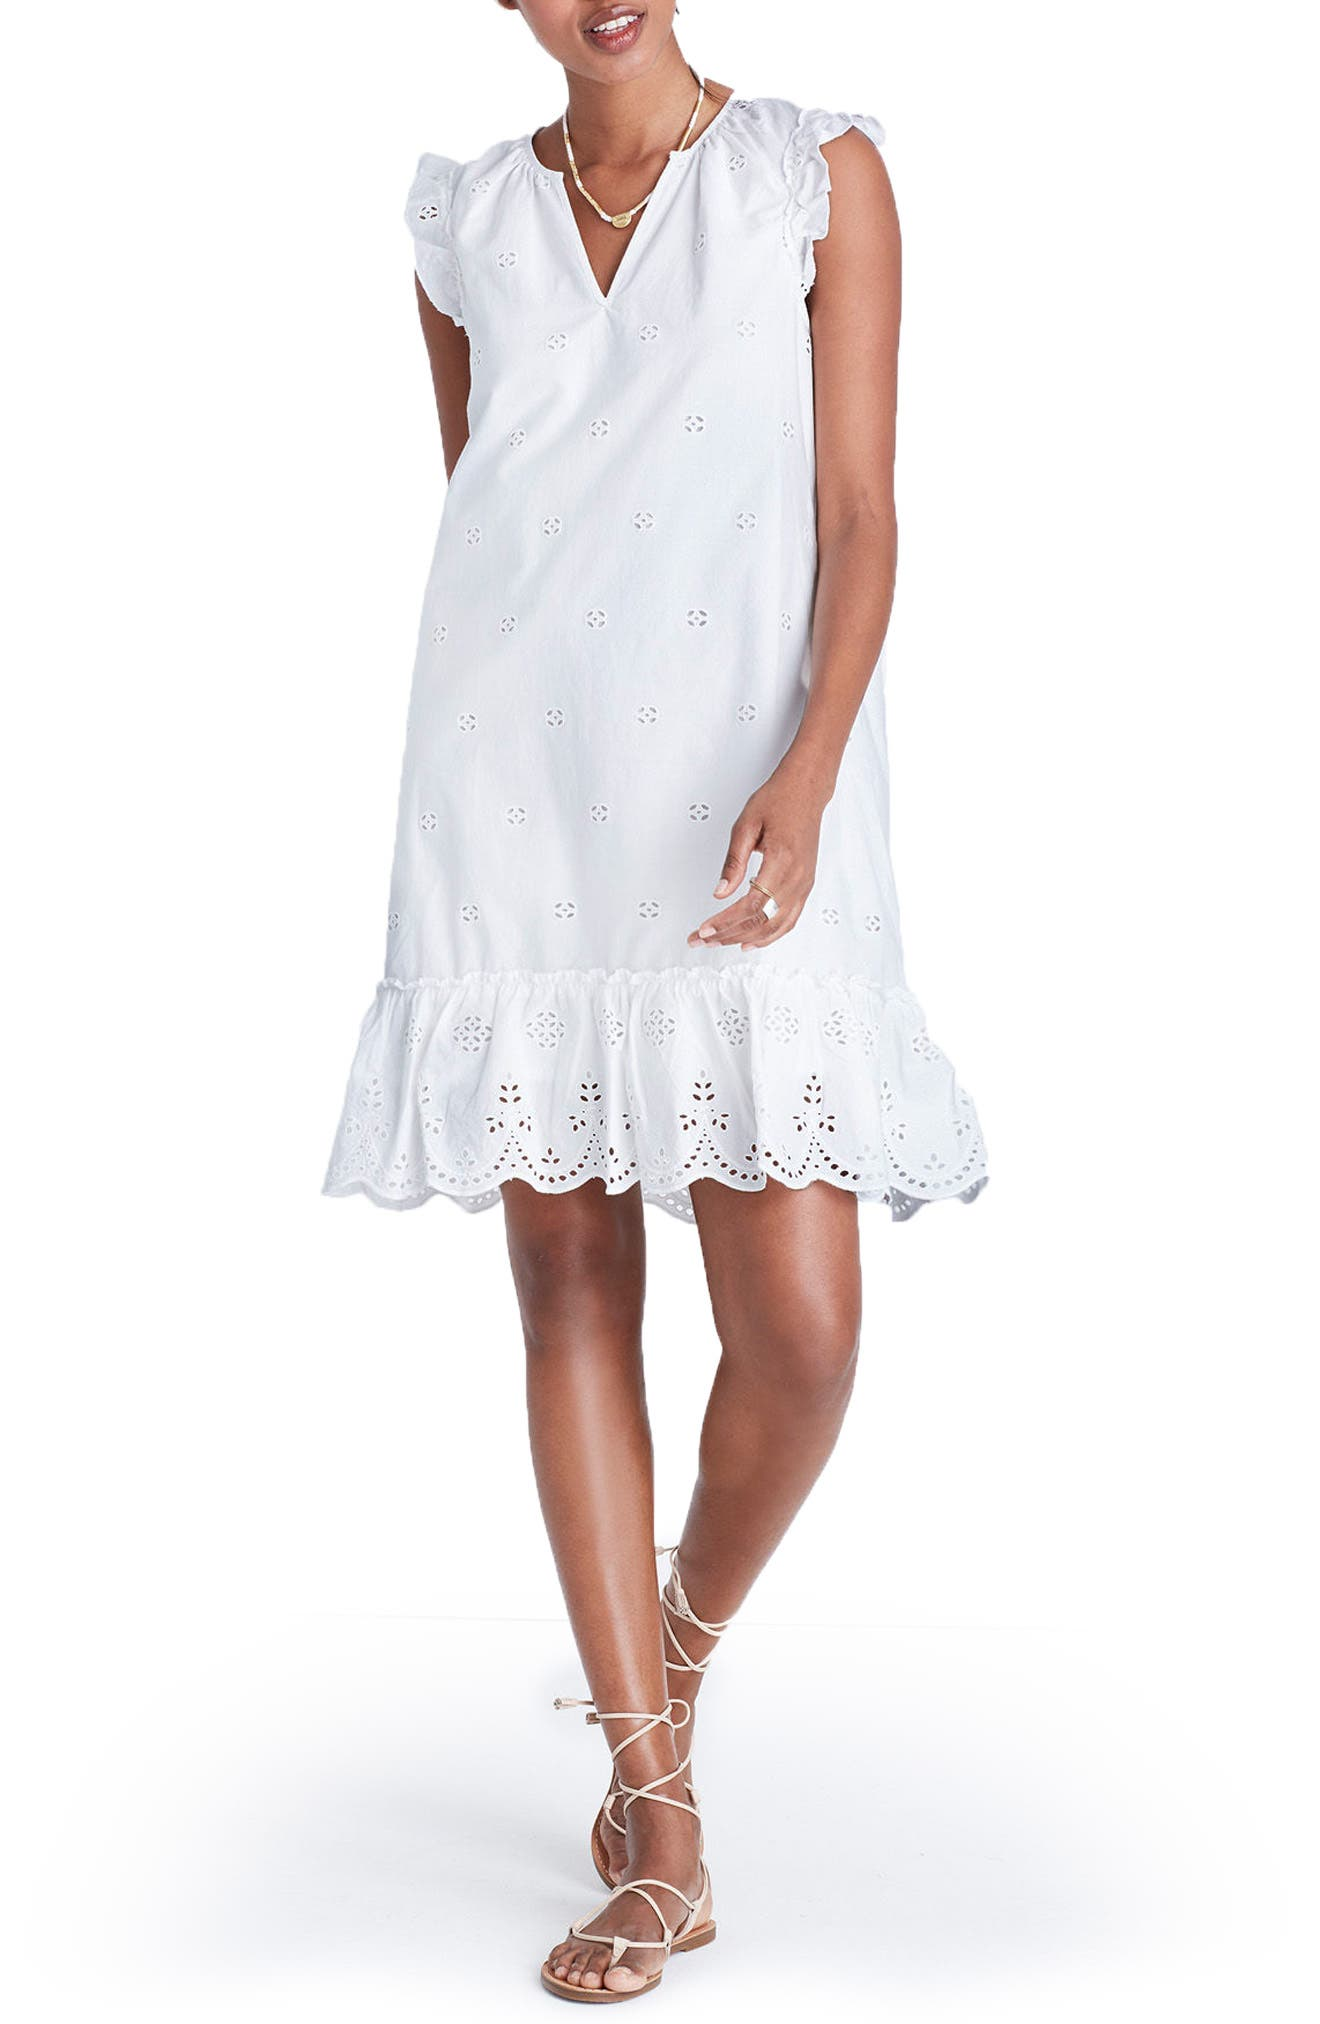 Alternate Image 1 Selected - Madewell Eyelet Garden Dress